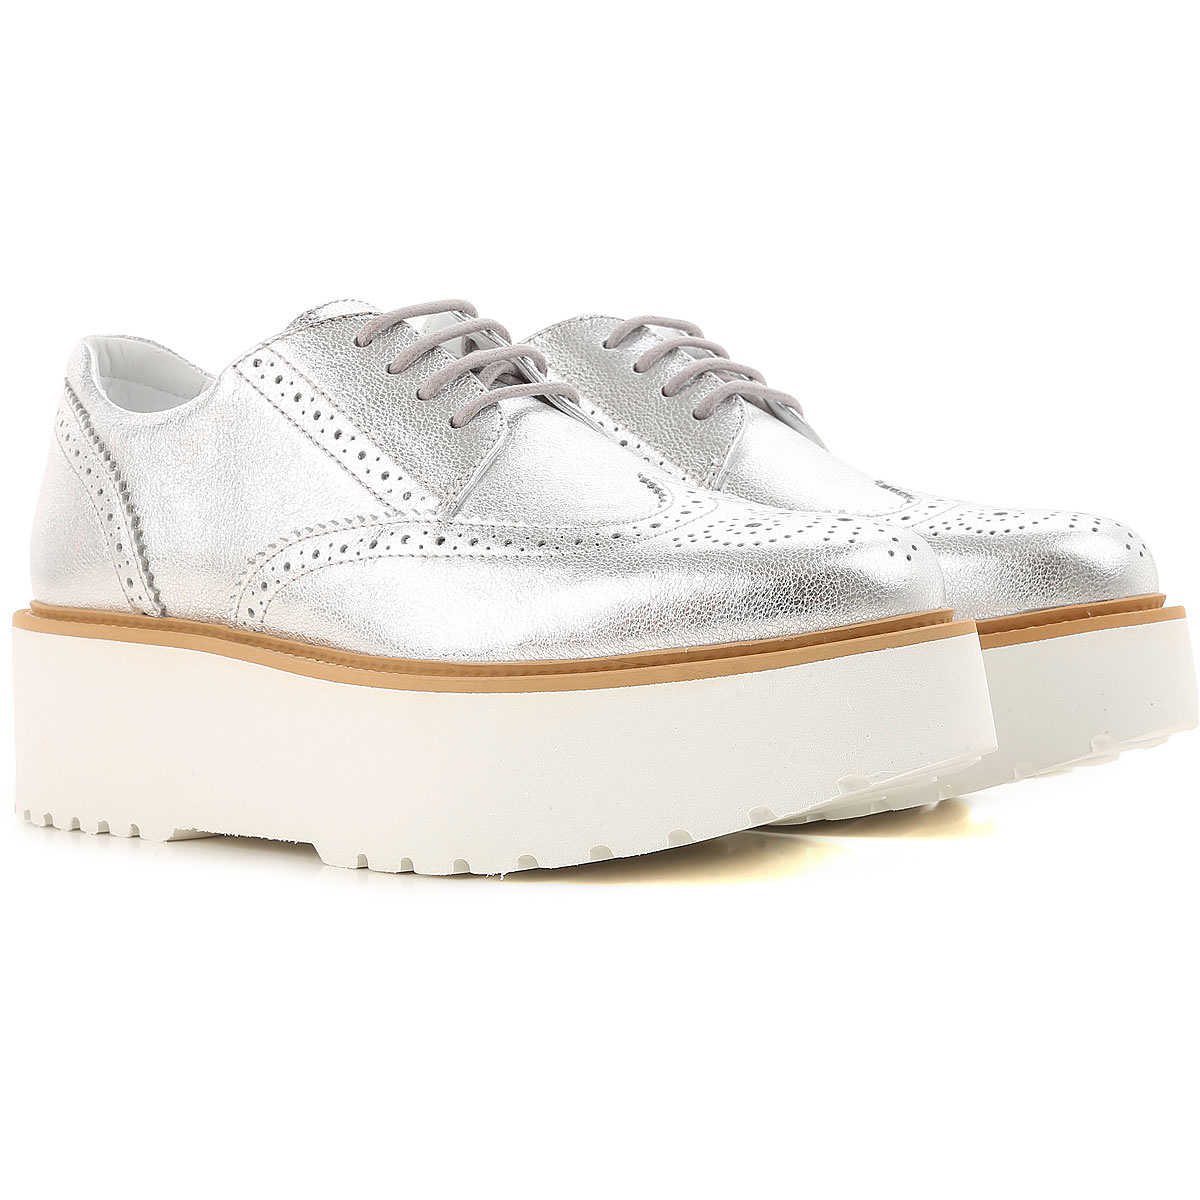 Hogan Wedges for Women On Sale in Outlet Silver DK - GOOFASH - Womens HOUSE SHOES